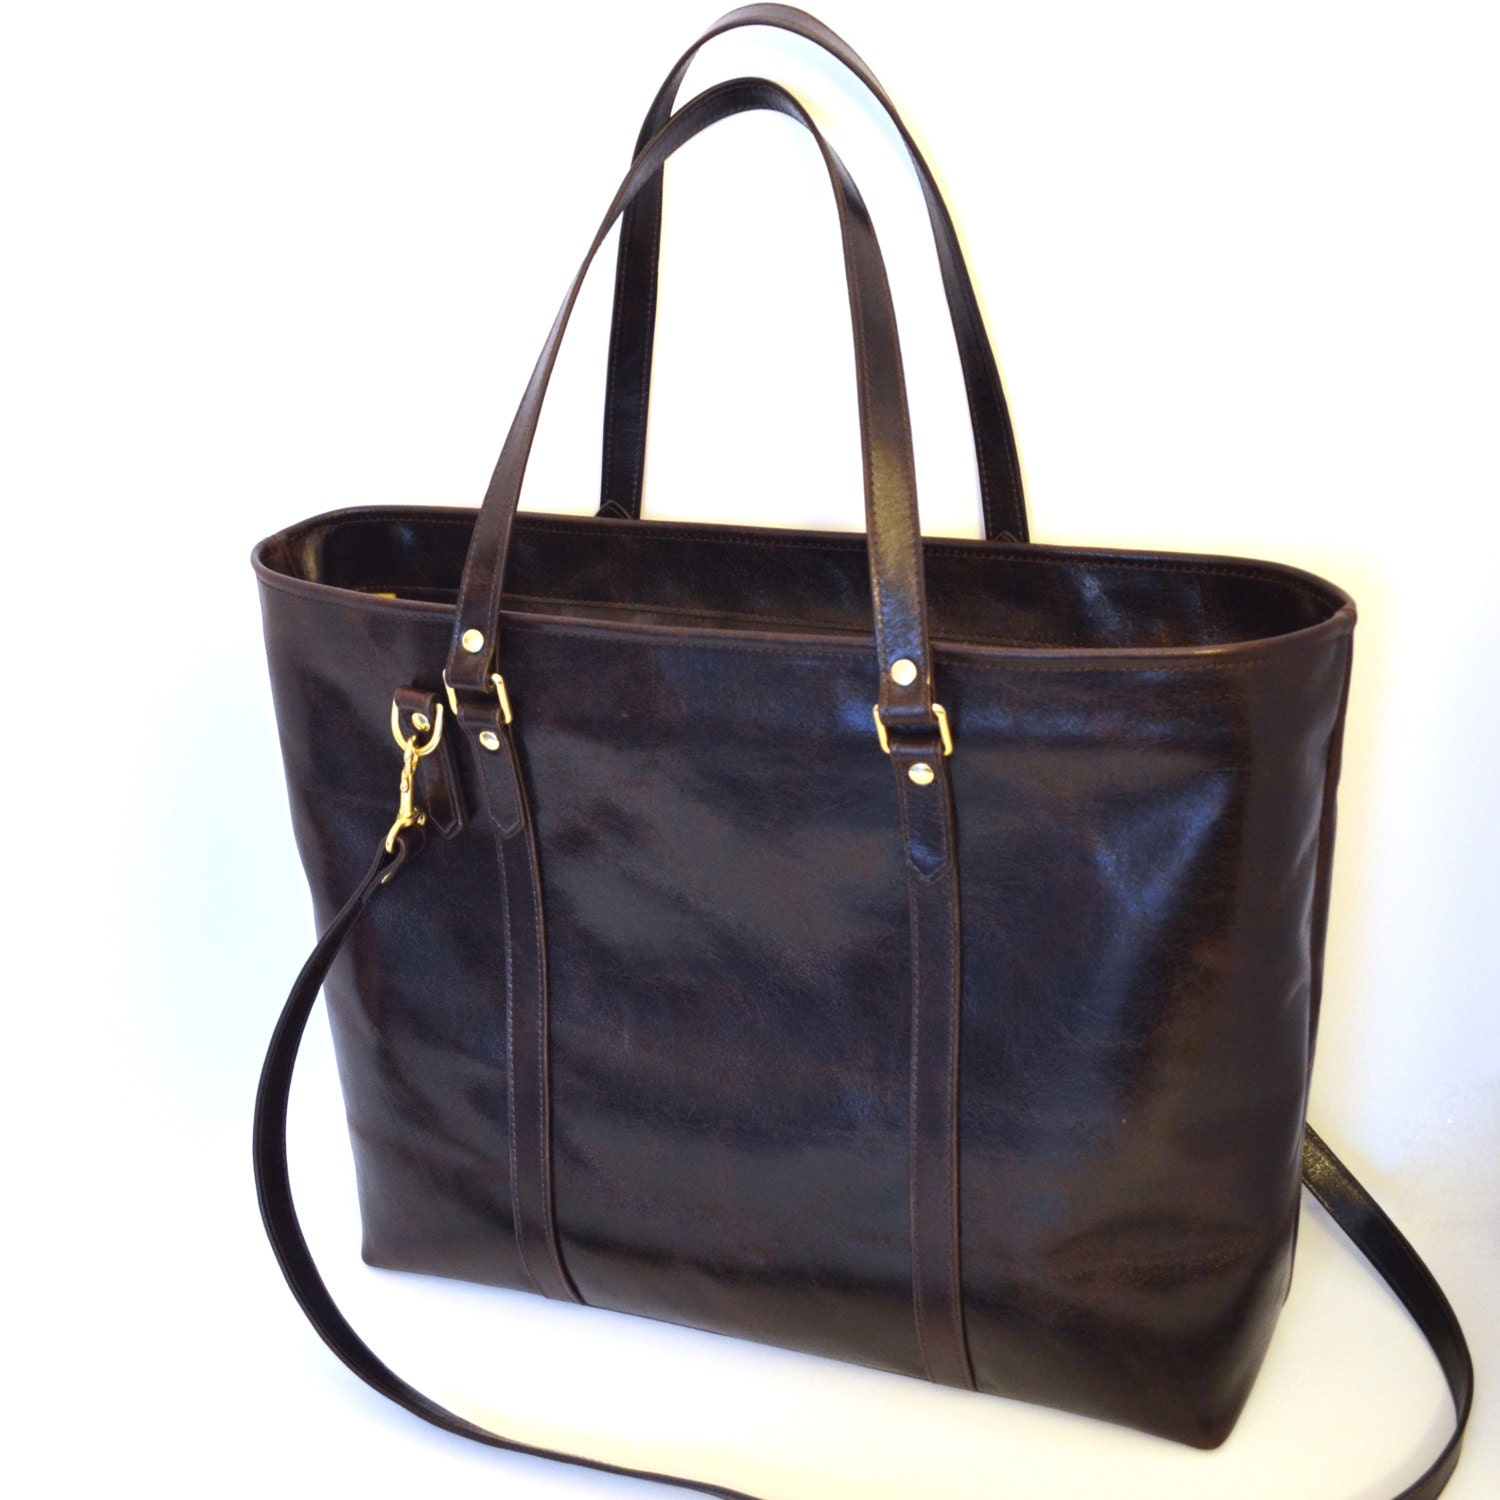 leather diaper bag leather tote brown leather tote bag. Black Bedroom Furniture Sets. Home Design Ideas